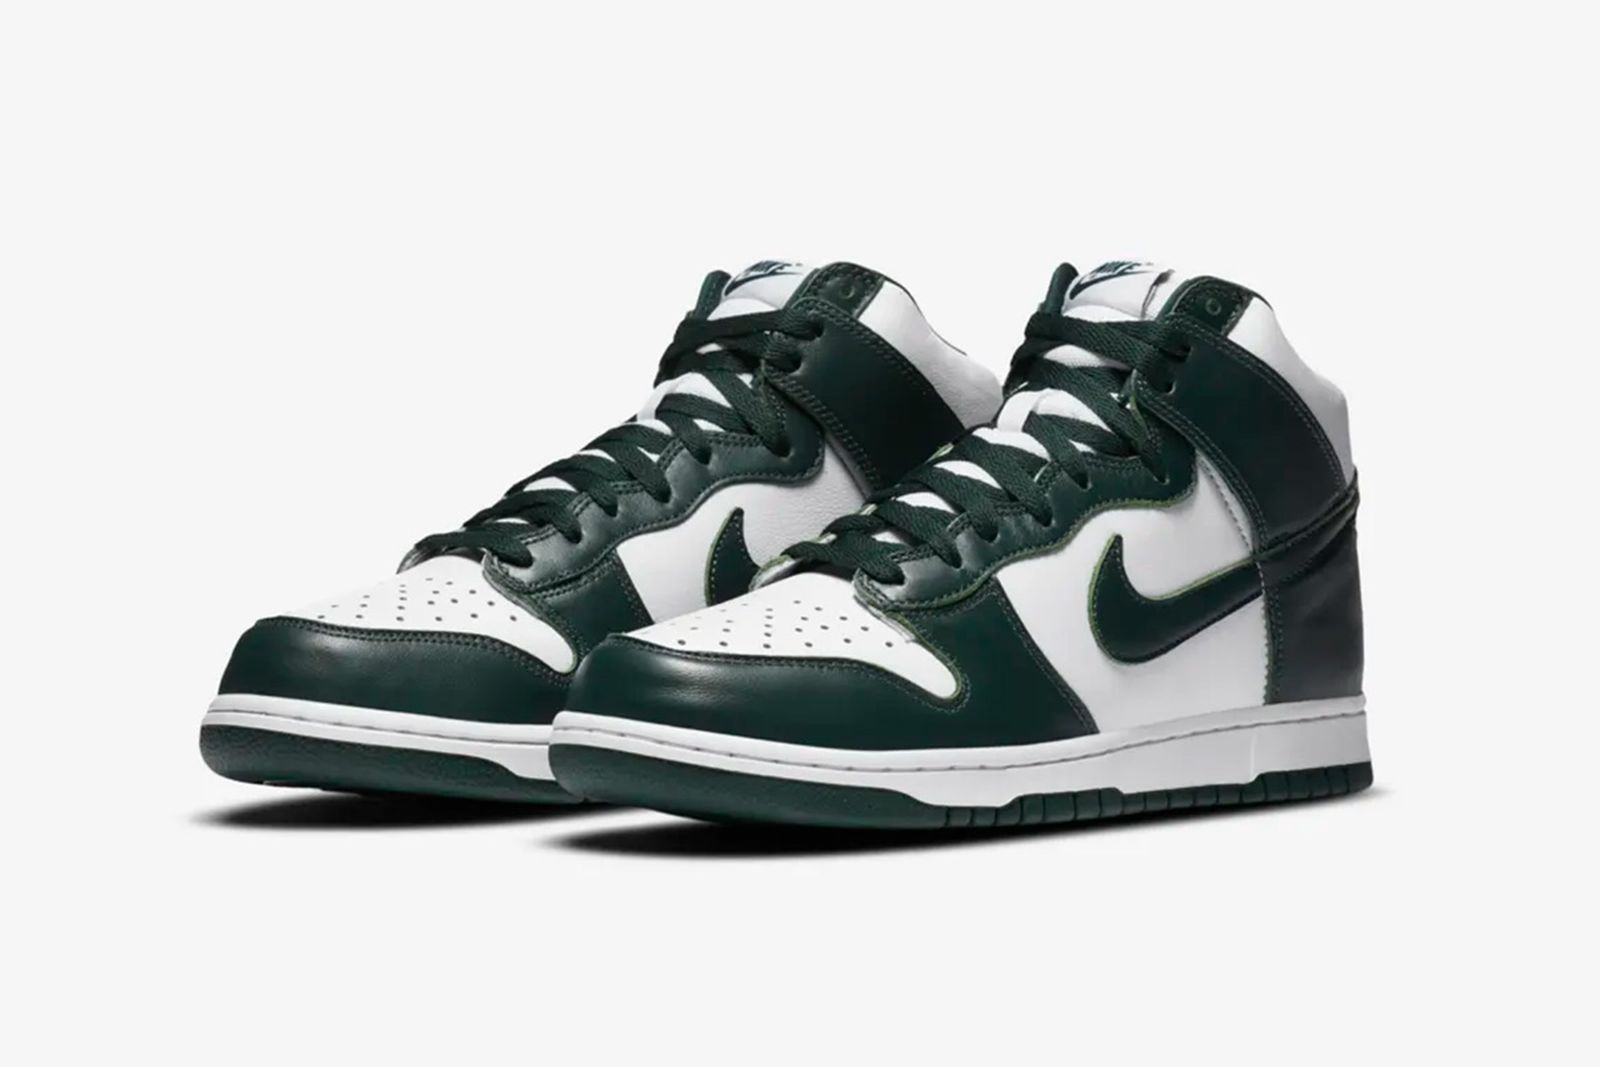 nike-dunk-high-spartan-green-release-date-price-03